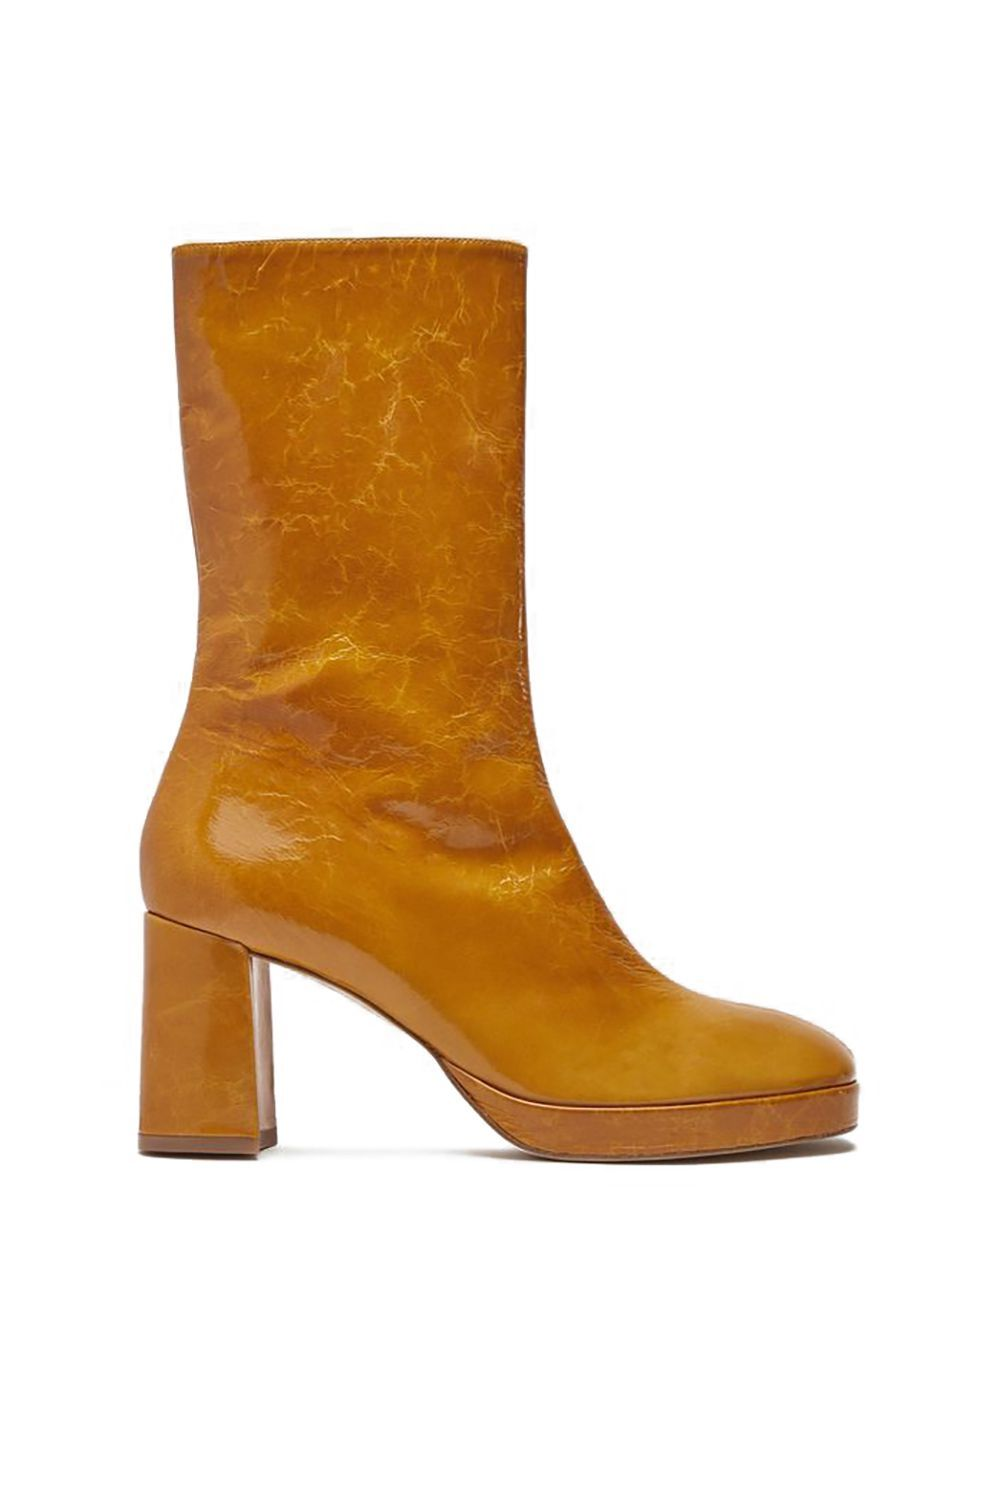 Crinkled Patent Leather Boots Miista usa.miista.com $400.00 SHOP IT Who said that crisp leafy hues are only for fall? Pair these pumpkin-spice-colored crinkled leather boots with white jeans or a skirt for an effortlessly chic, retro-inspired spring look.